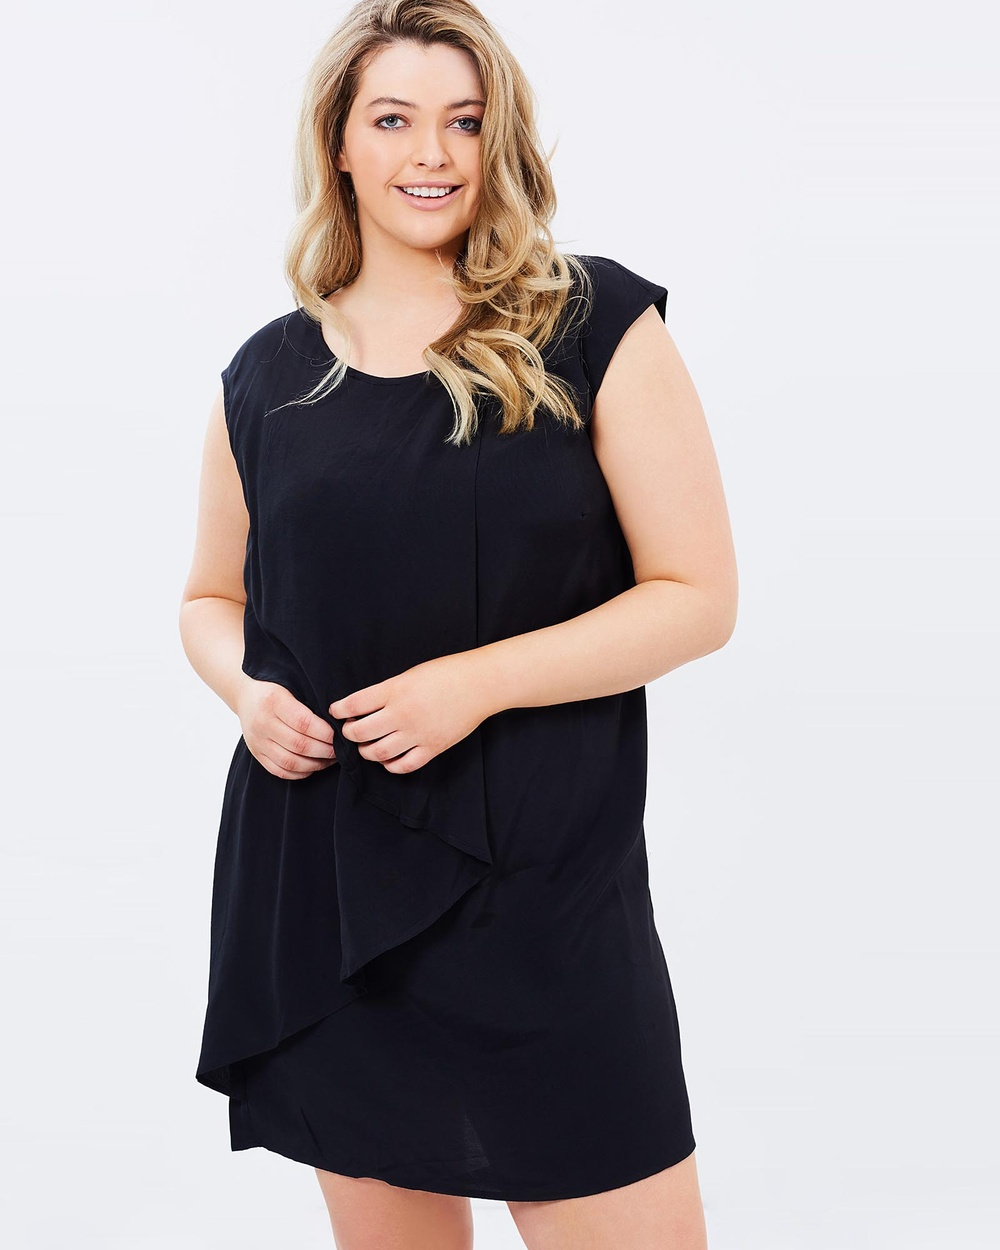 Advocado Plus Nightfall Folded Overlay Dress Dresses Black Nightfall Folded Overlay Dress